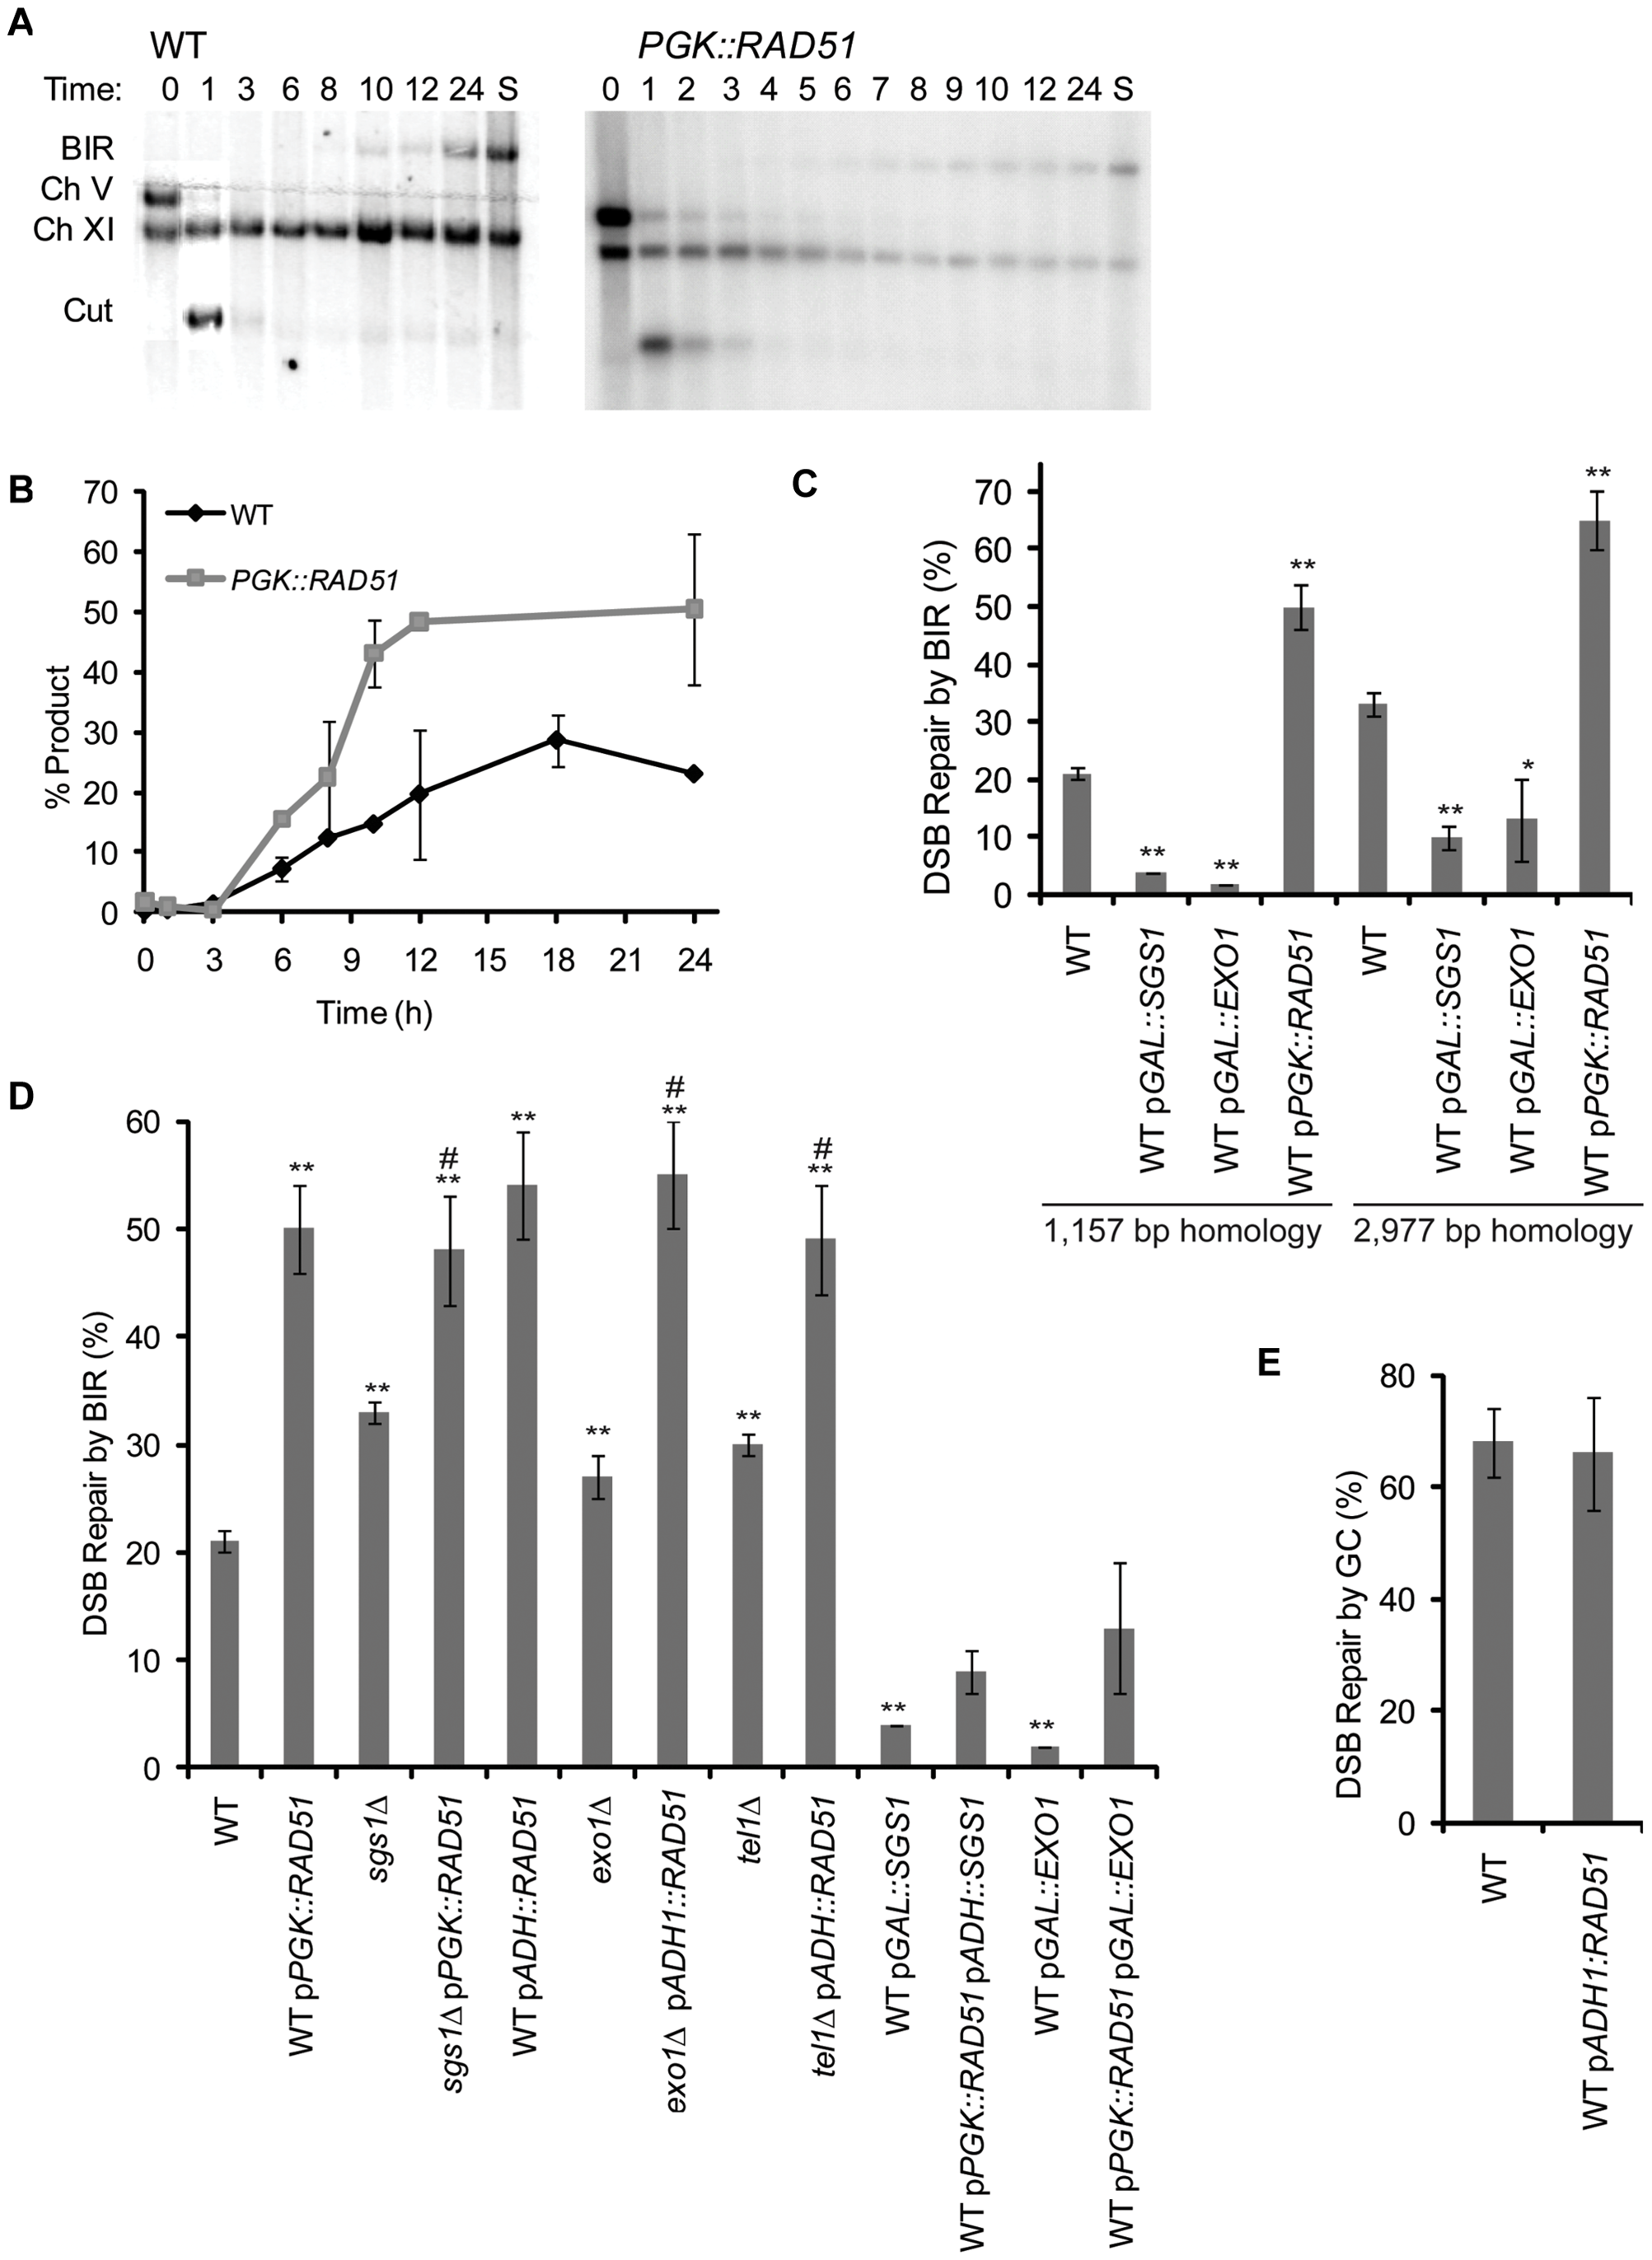 Overexpression of <i>RAD51</i> increases the kinetics and efficiency of BIR.